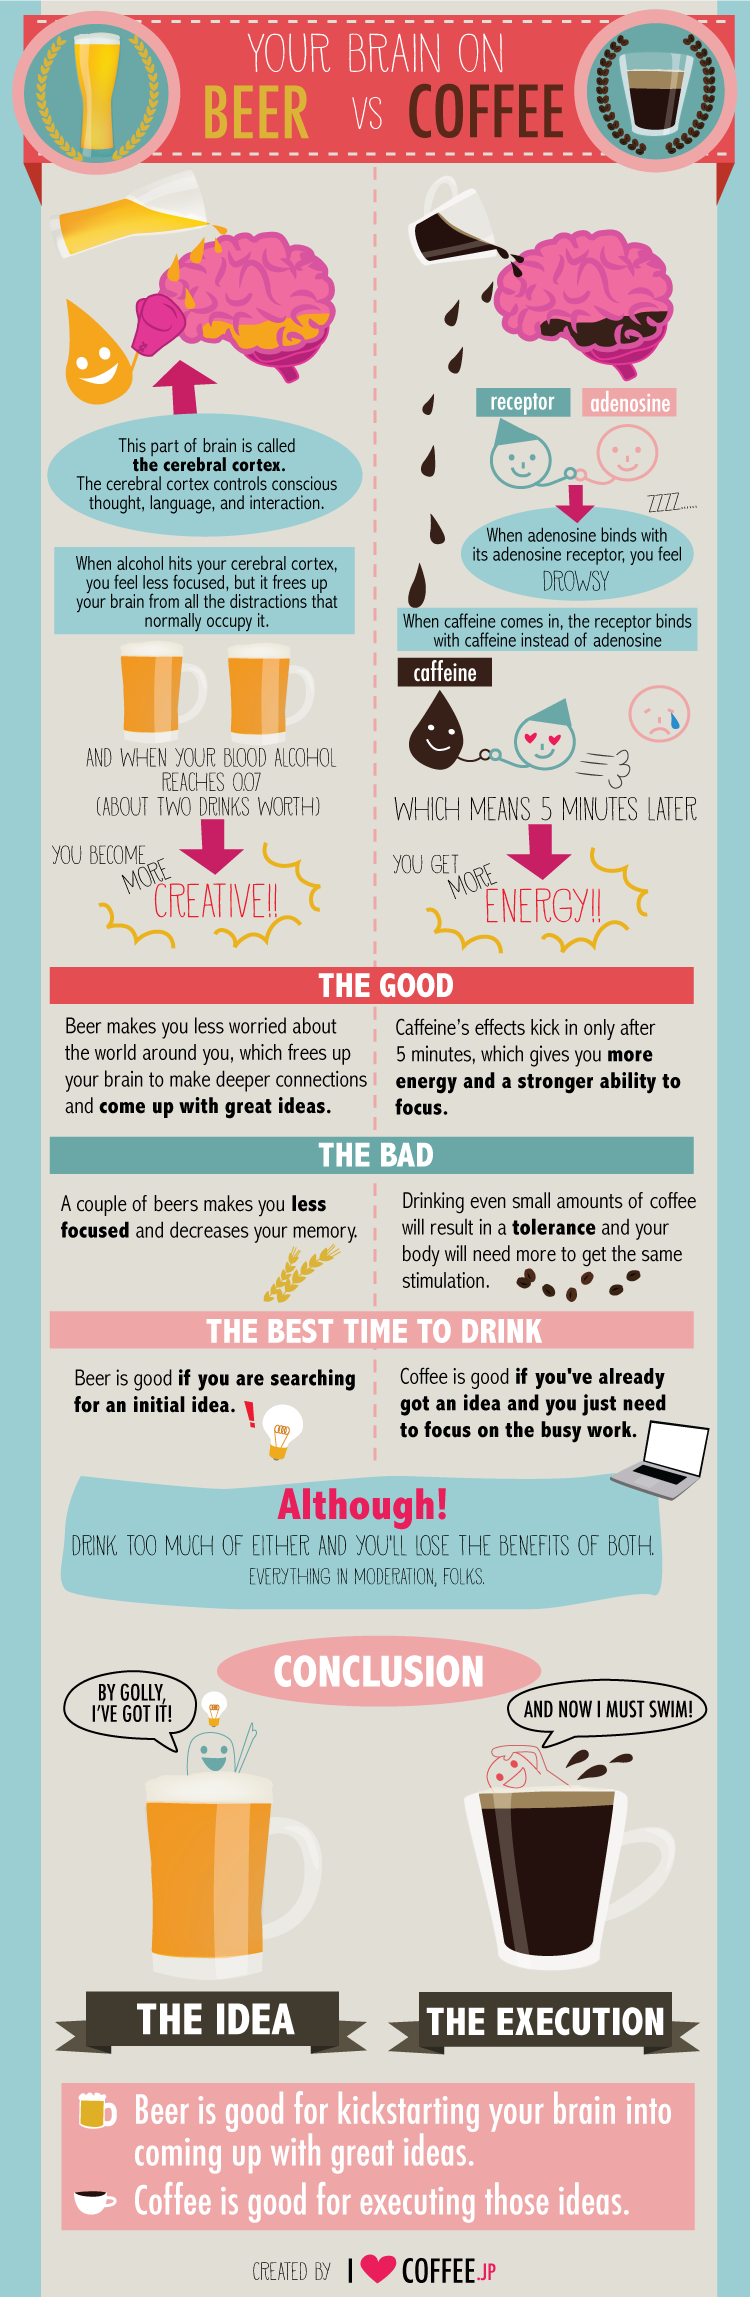 Infographic: Your Brain on Beer Vs Coffee